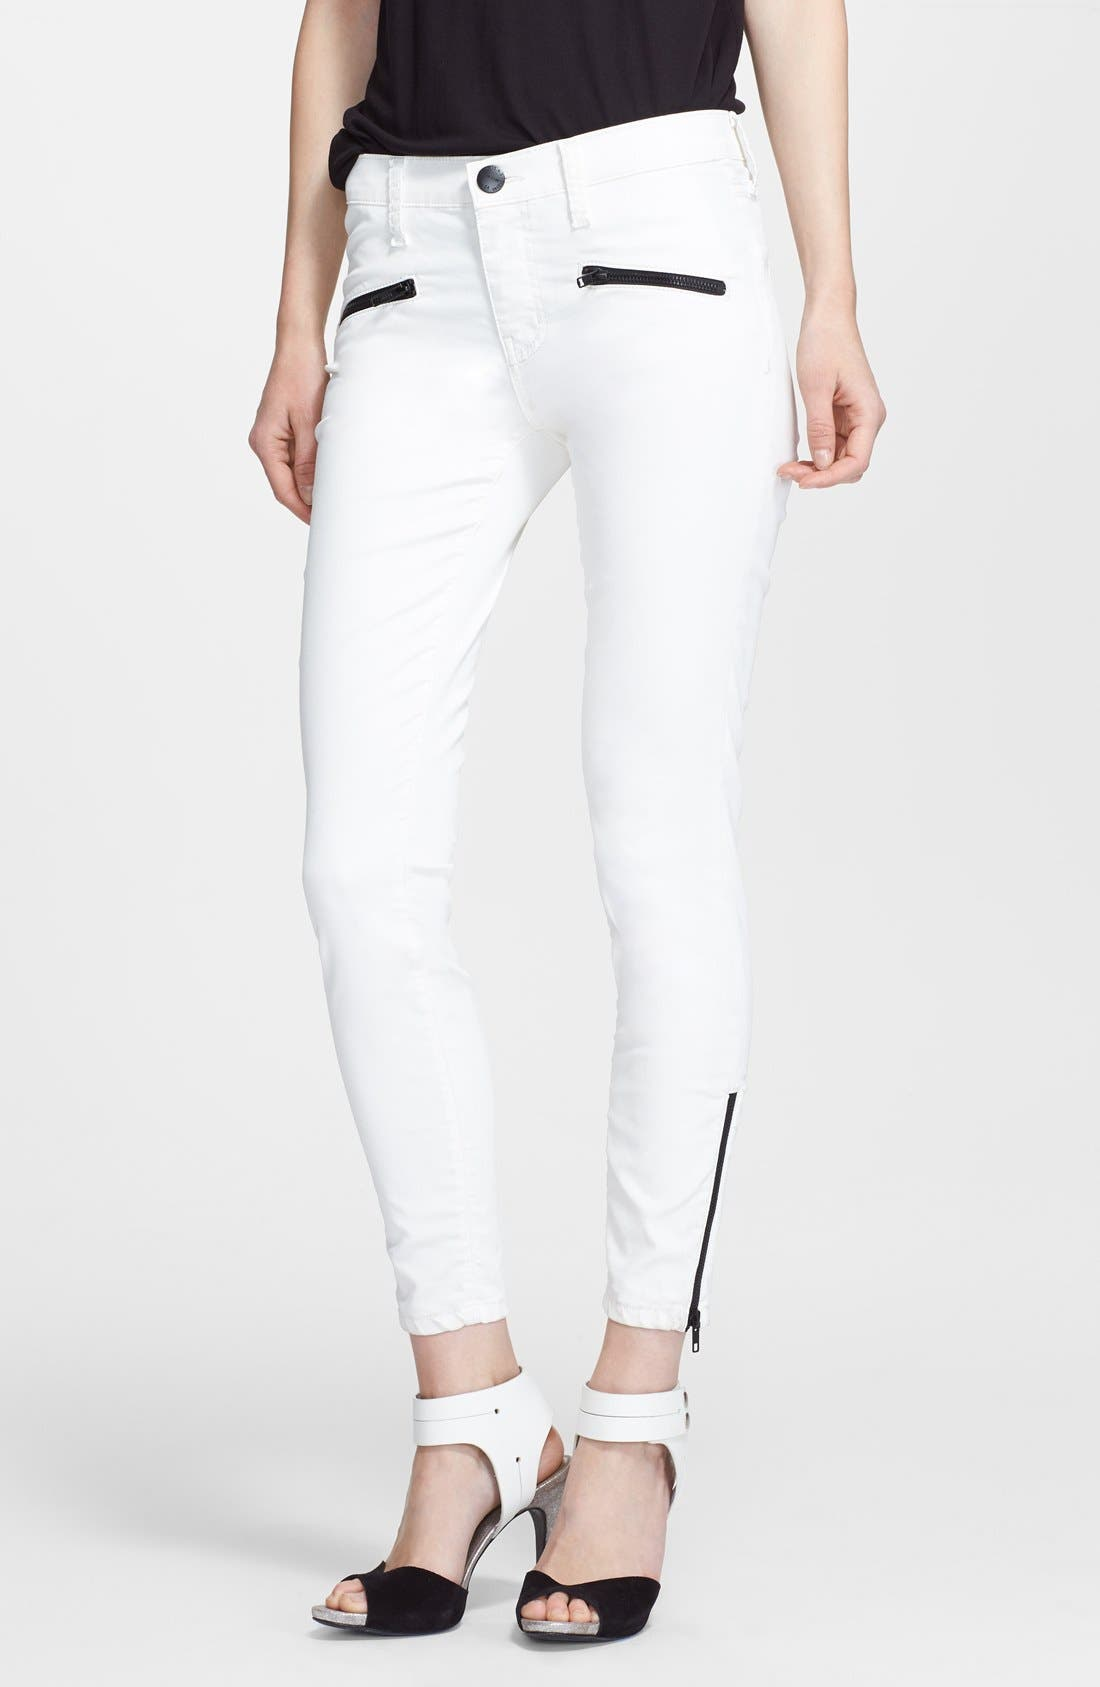 Alternate Image 1 Selected - Current/Elliott 'The Soho Zip Stiletto' Skinny Jeans (Sugar Coated)